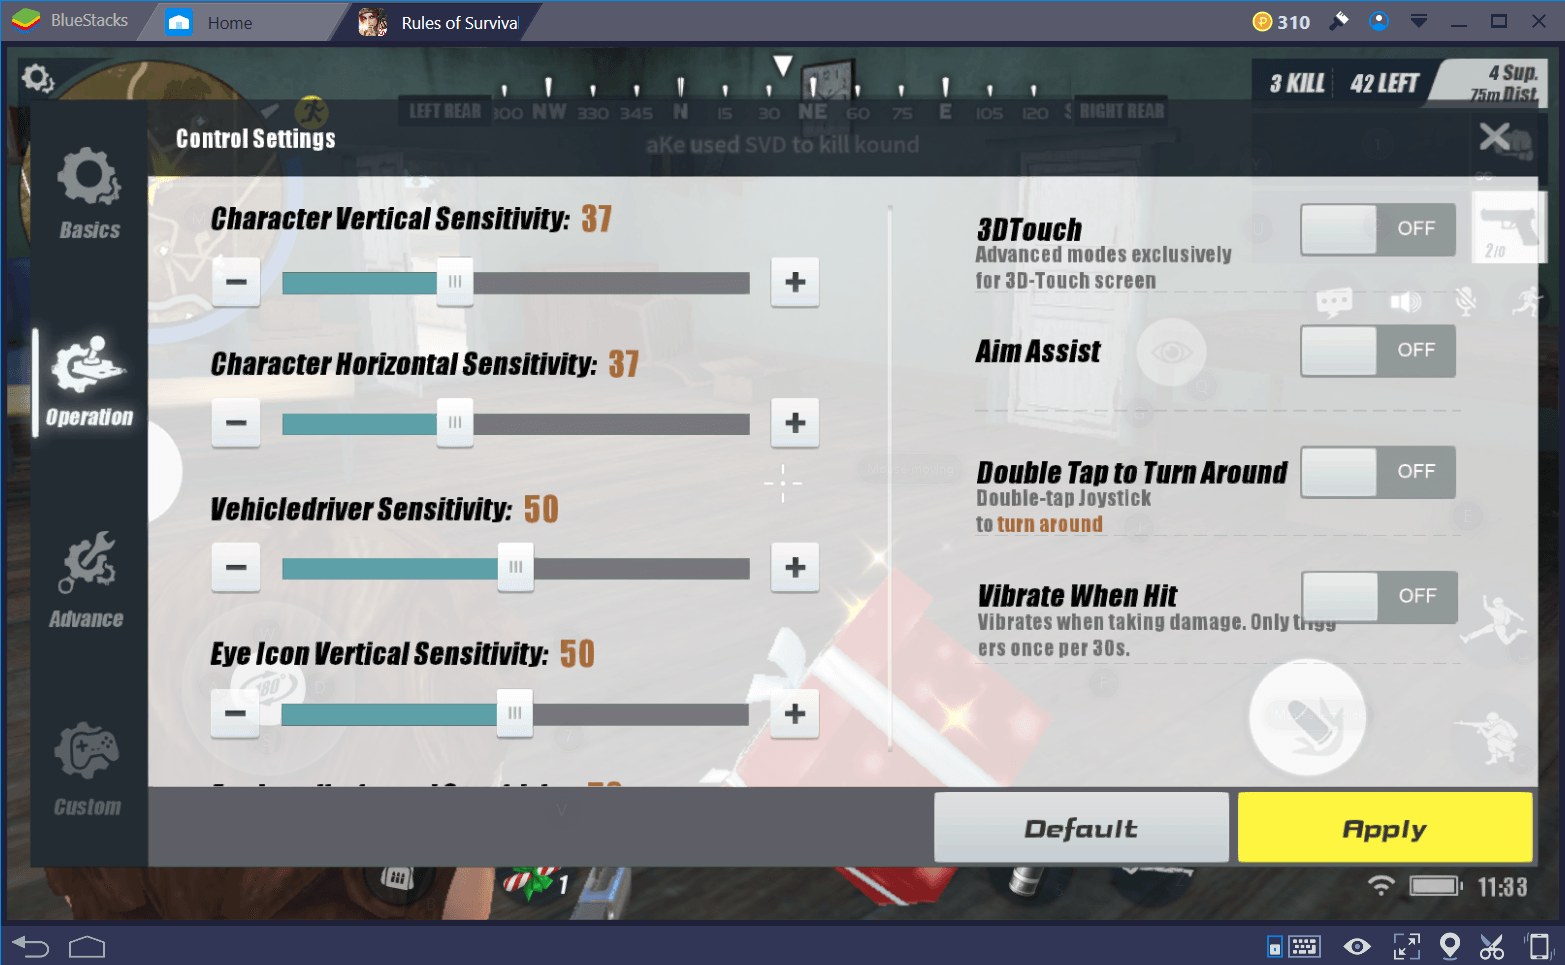 rules of Survival Sensitivity Controls